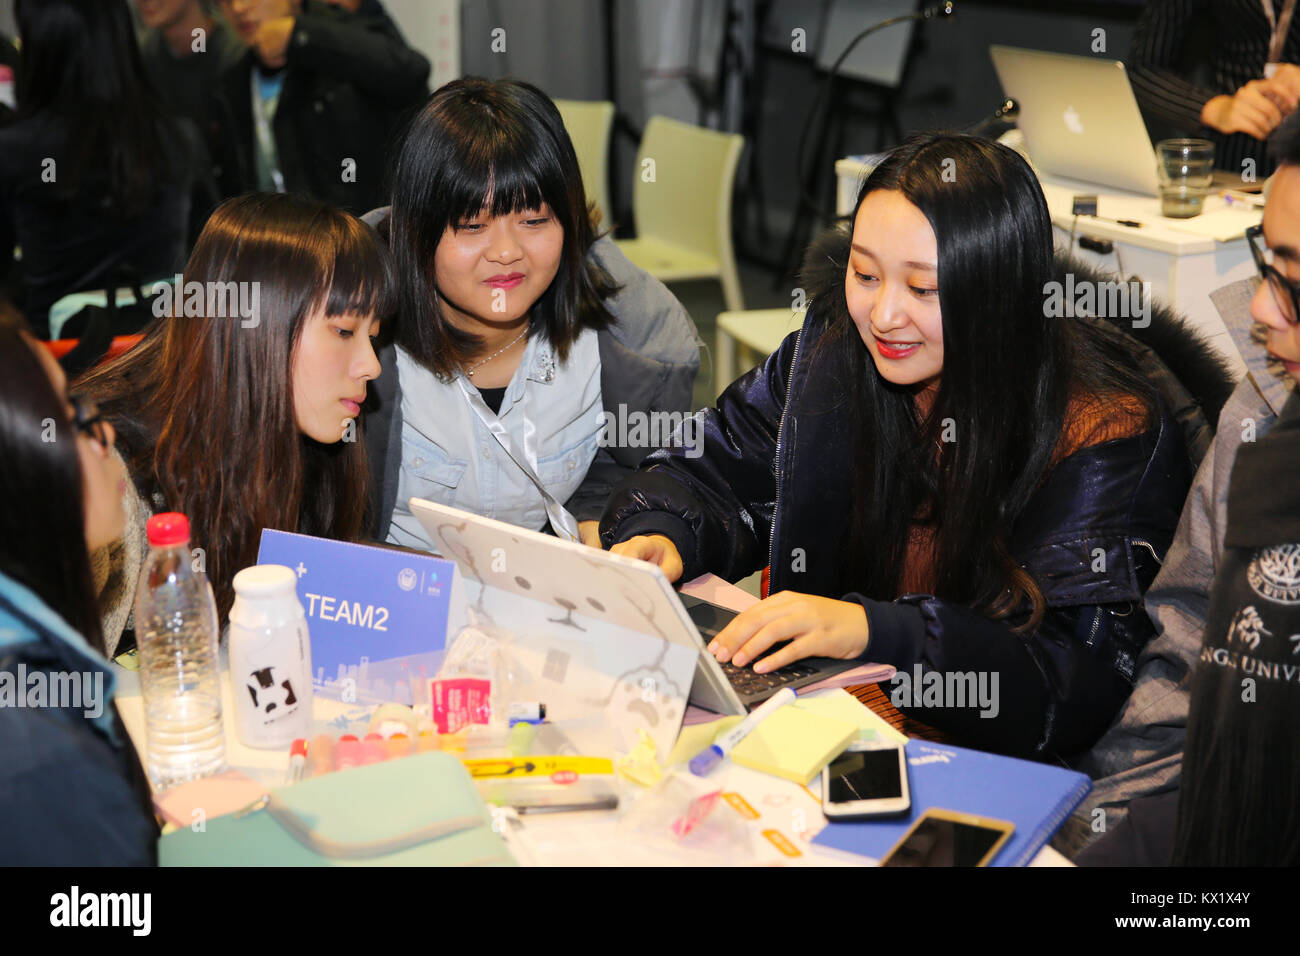 Shanghai China 6th Jan 2018 Students Discuss Startup Projects Stock Photo Alamy